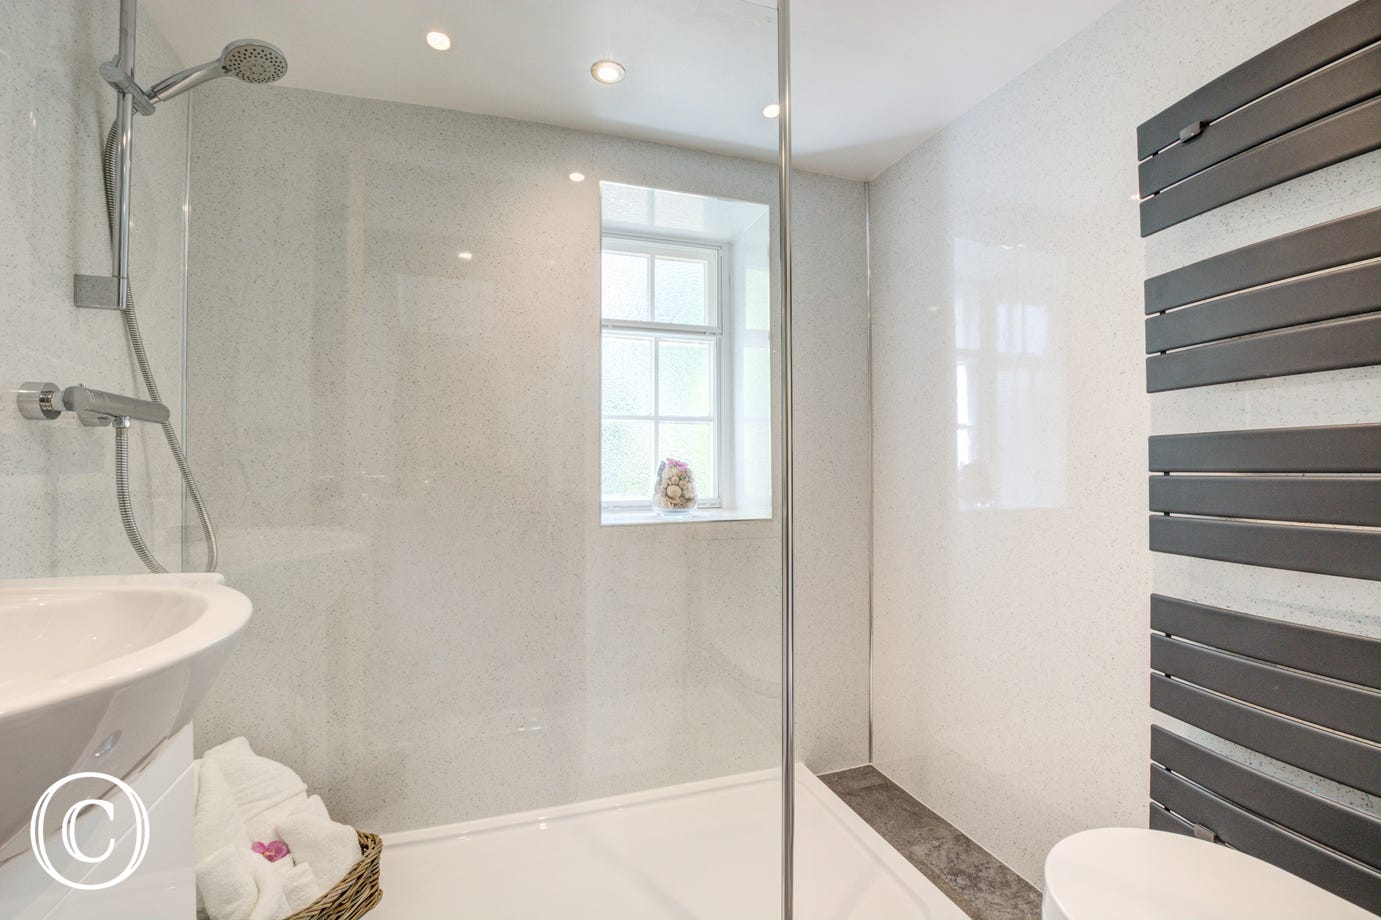 Spacious shower in the bathroom